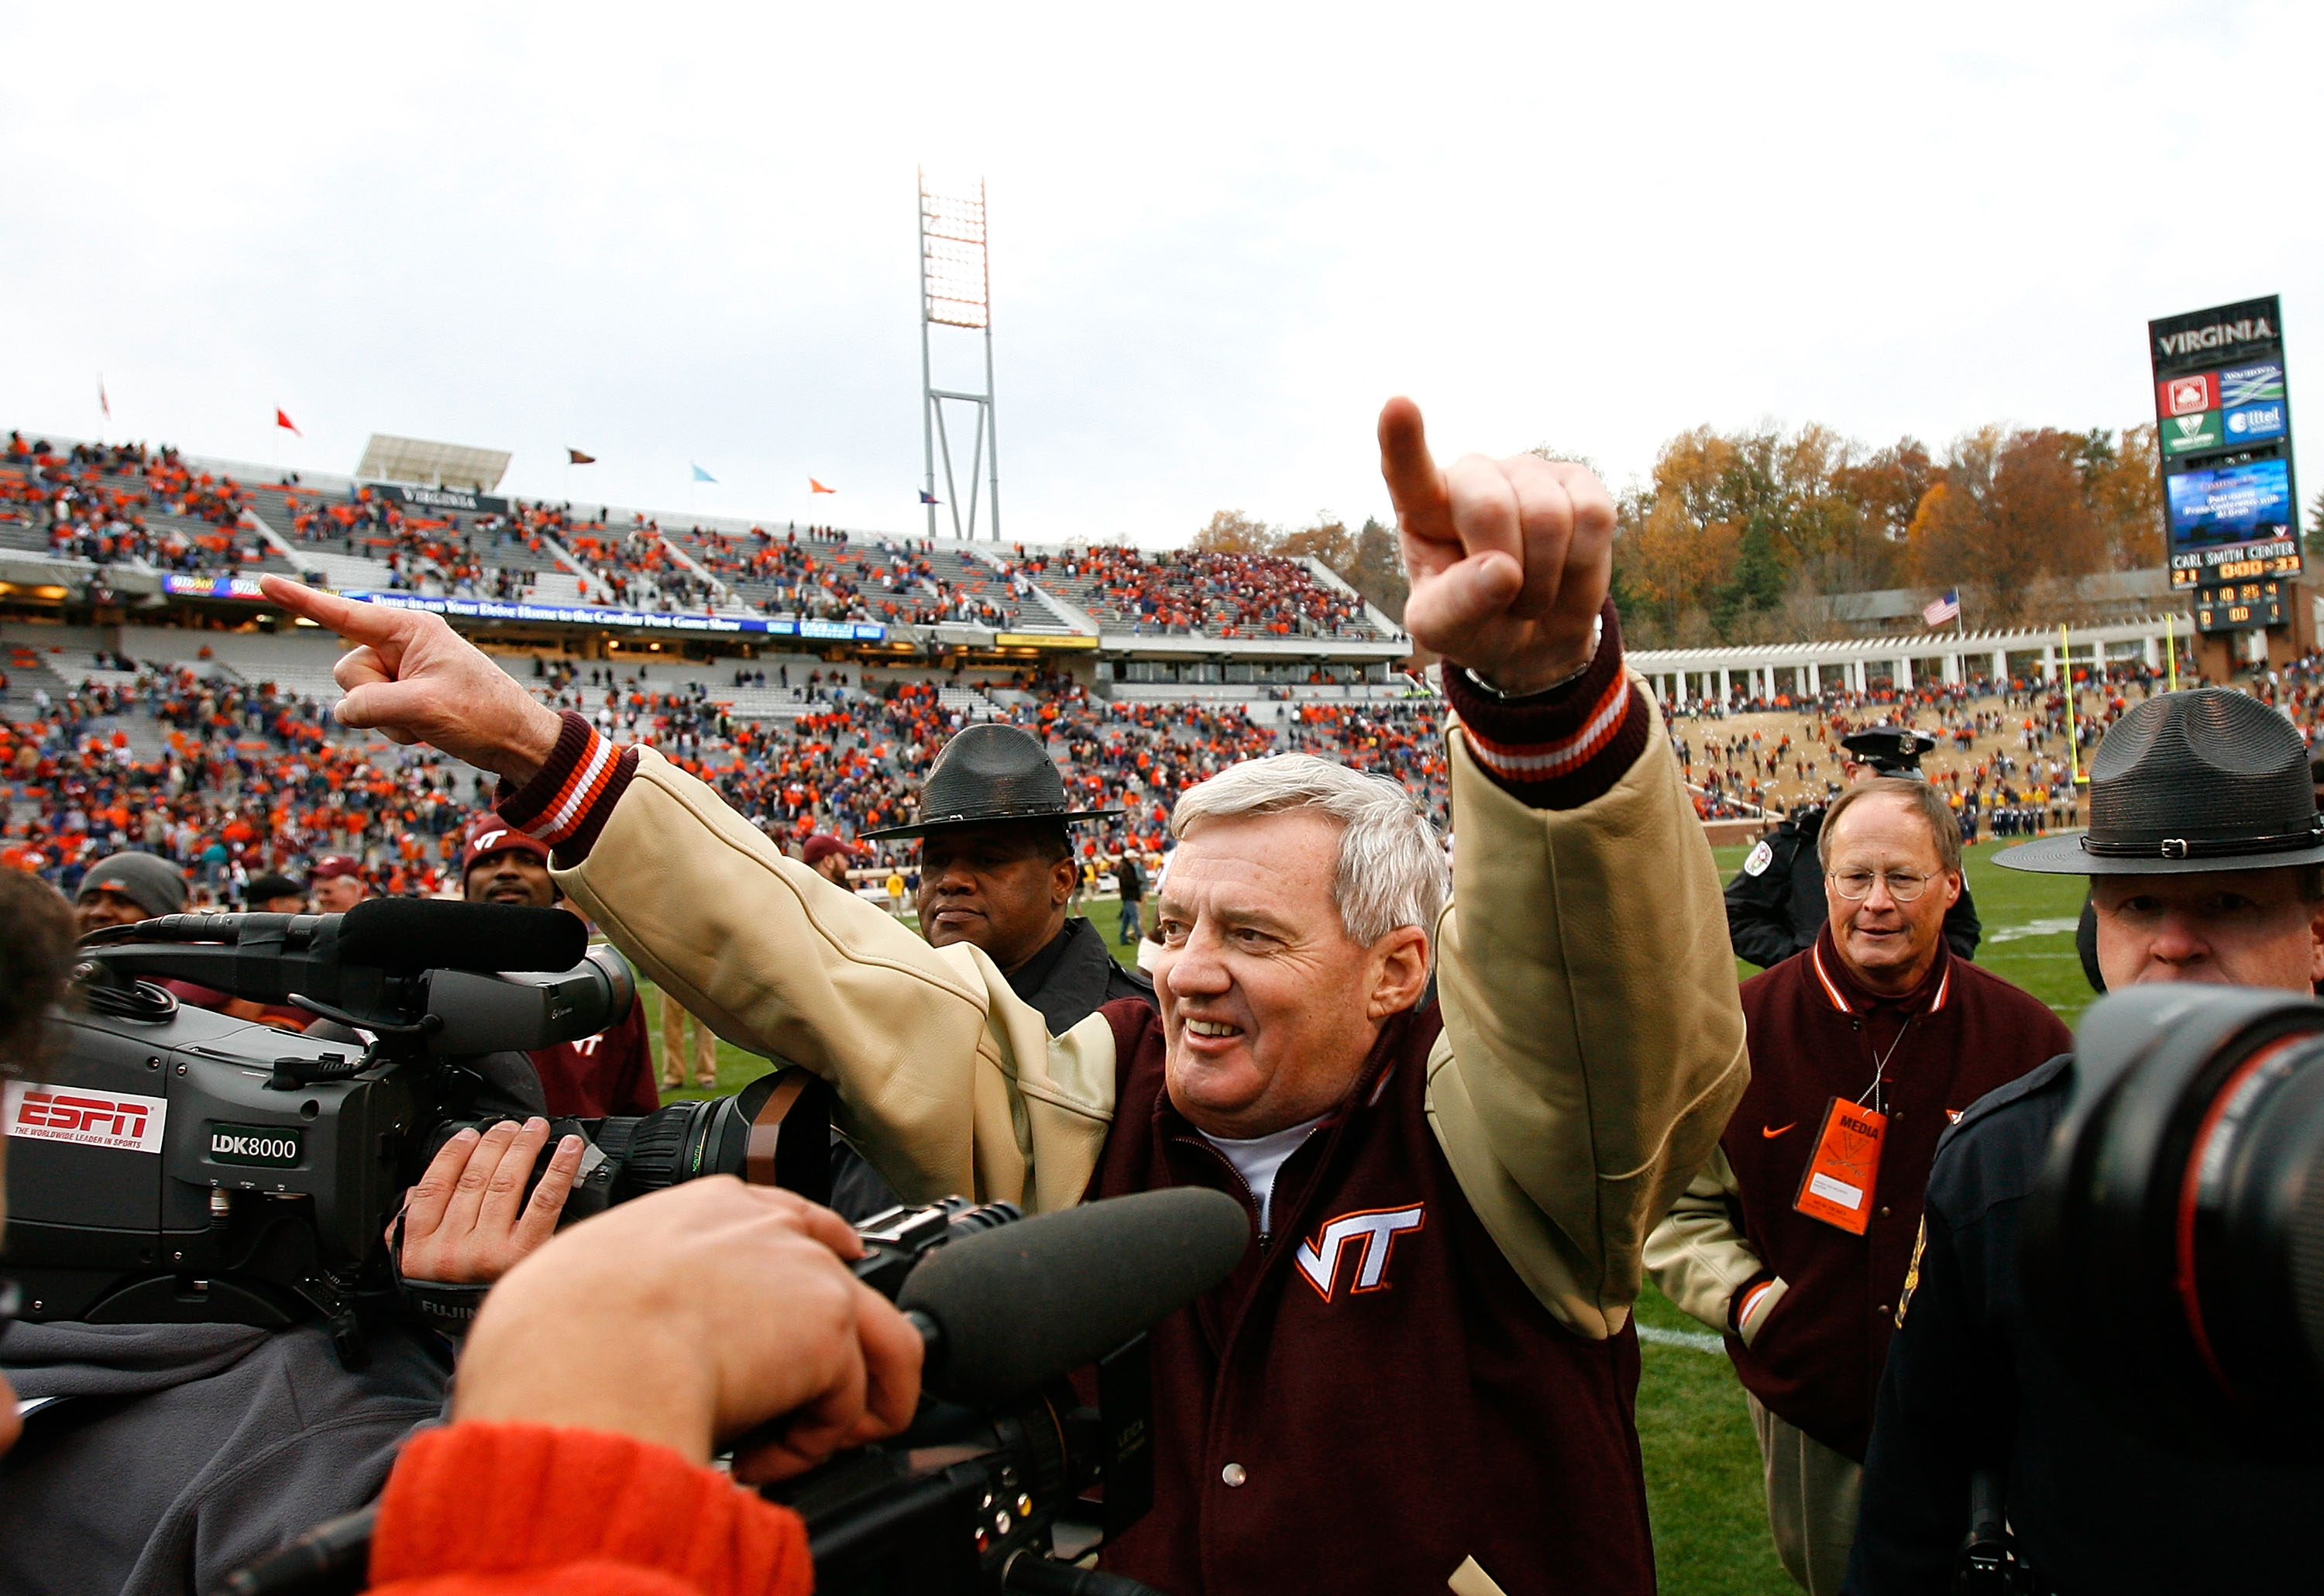 CHARLOTTESVILLE, VA - NOVEMBER 24:  Head coach Frank Beamer of the Virginia Tech Hokies celebrates after defeating the Virginia Cavaliers 33-21 at Scott Stadium on November 24, 2007 in Charlottesville, Virginia.  (Photo by Kevin C. Cox/Getty Images)